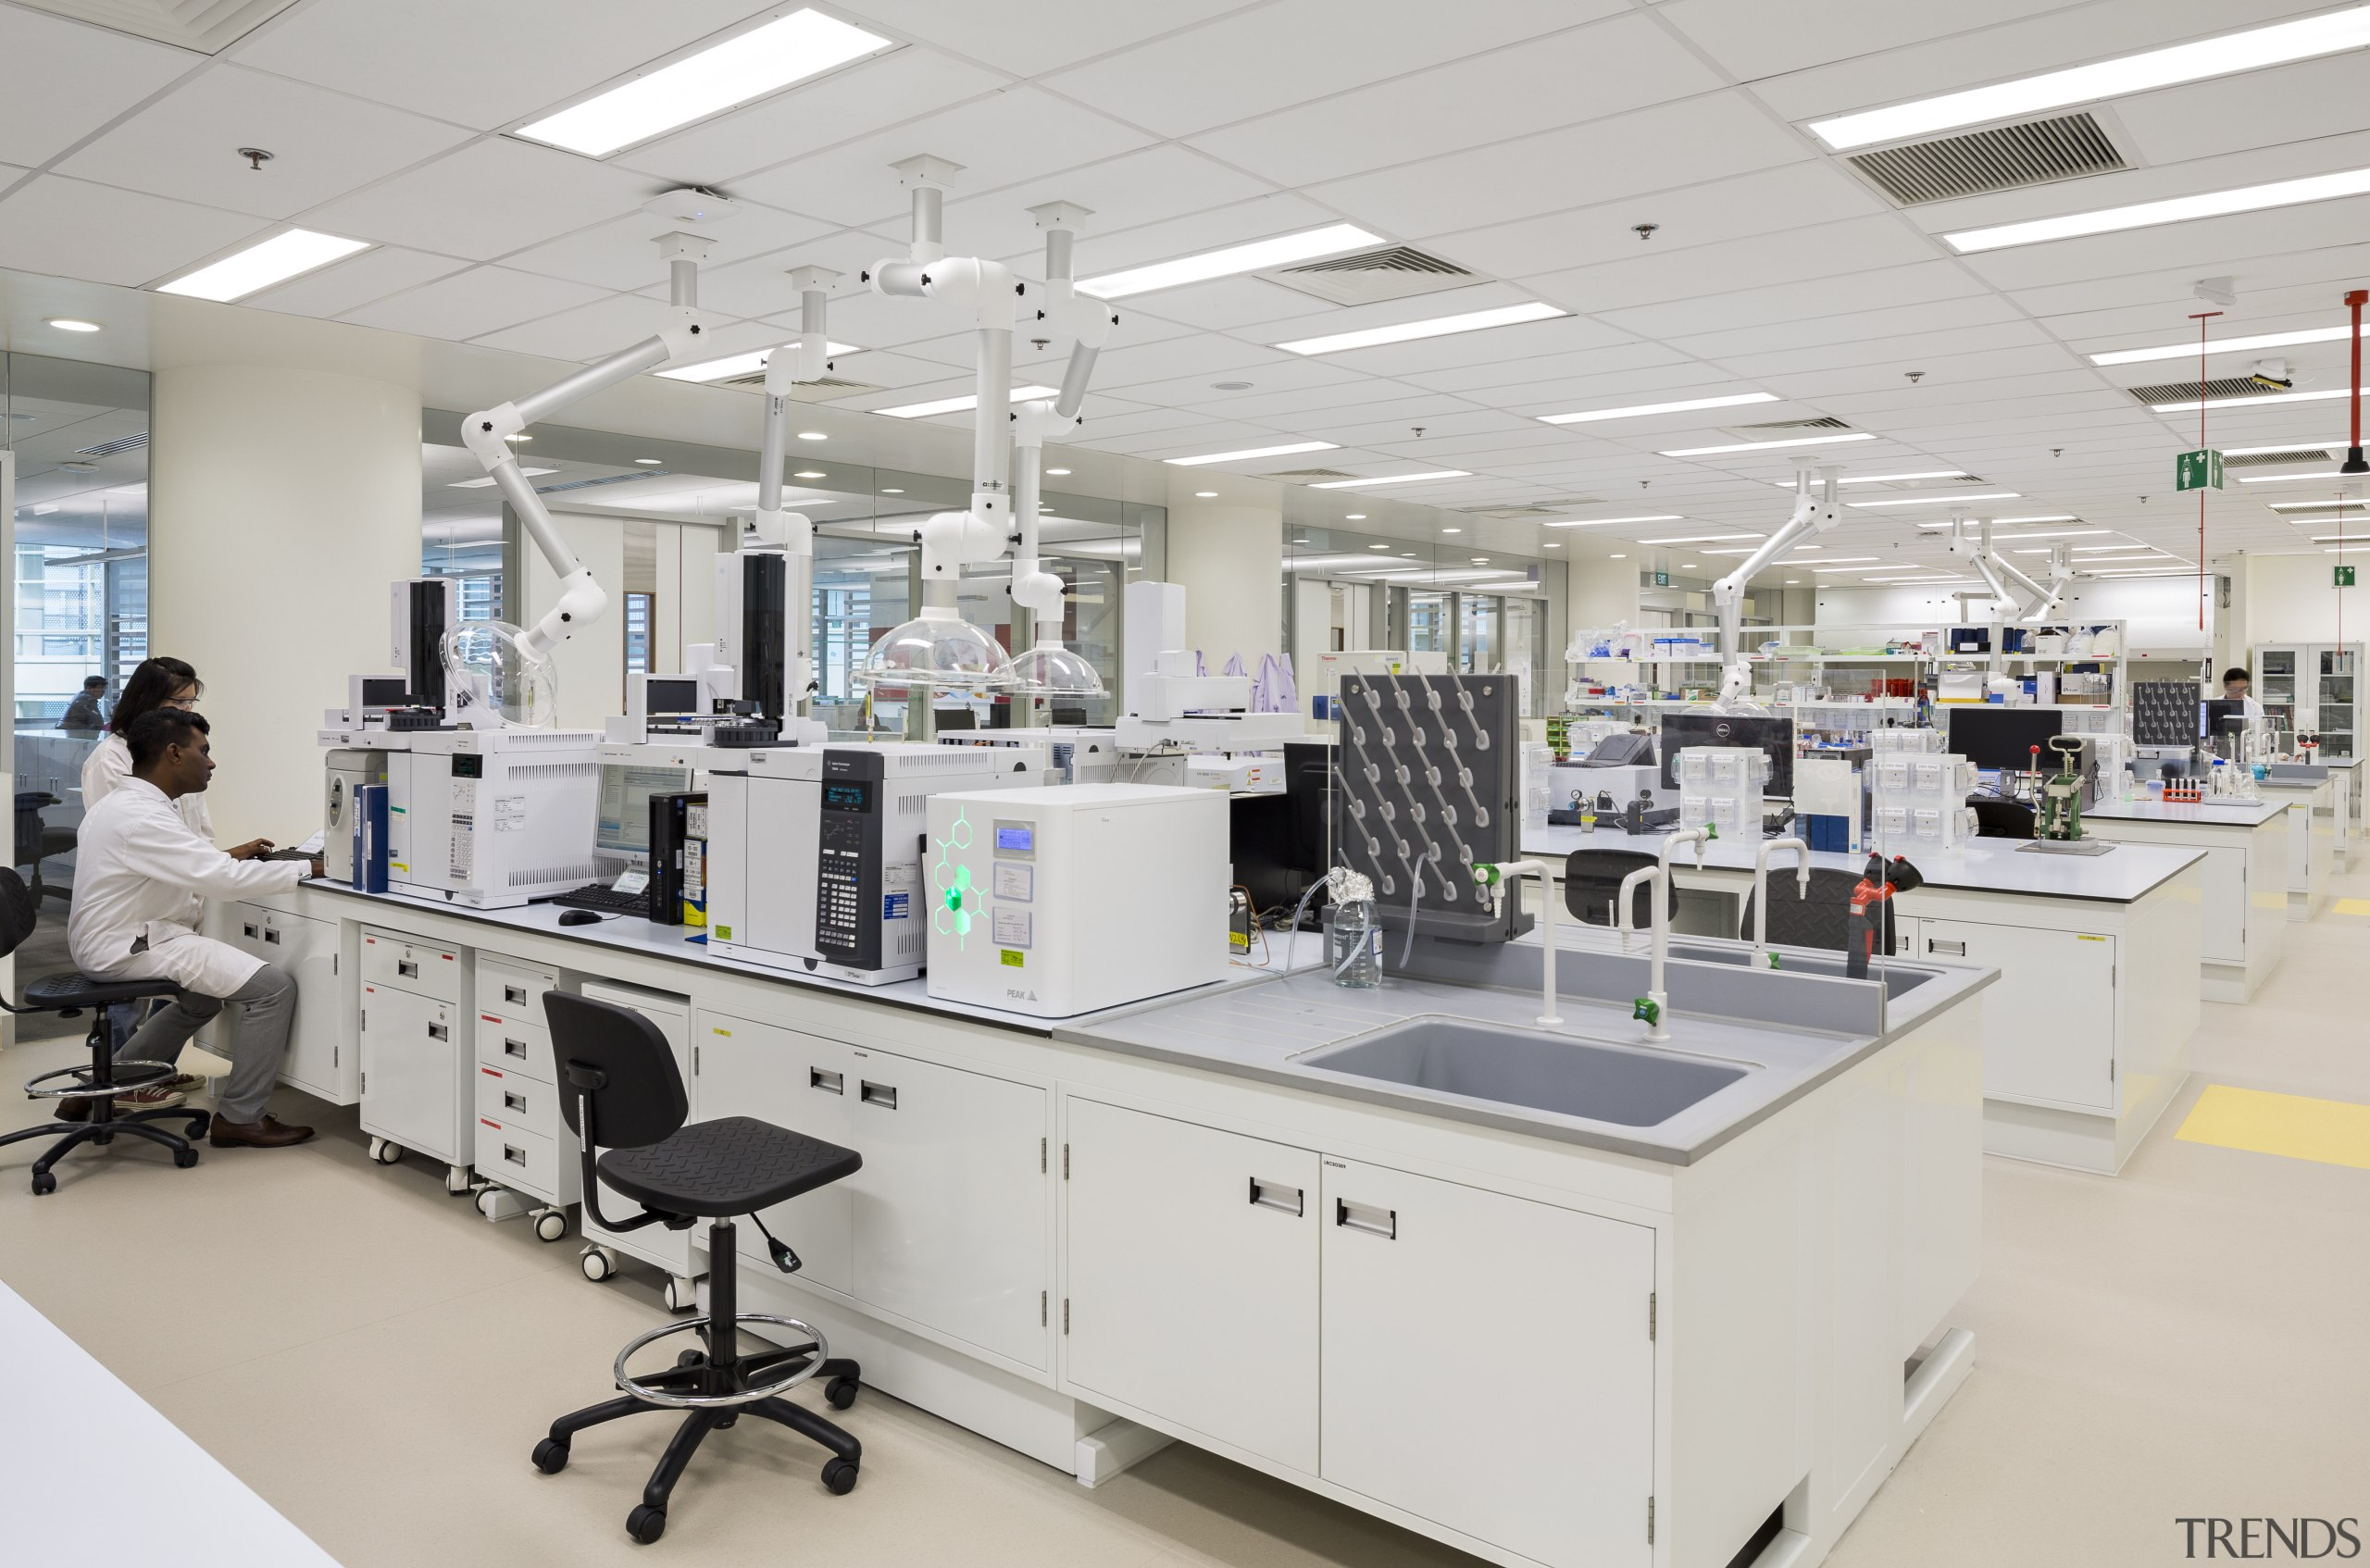 These laboratories for P&G Singapore were designed by chemistry, healthcare science, institution, laboratory, medical research, product, research, gray